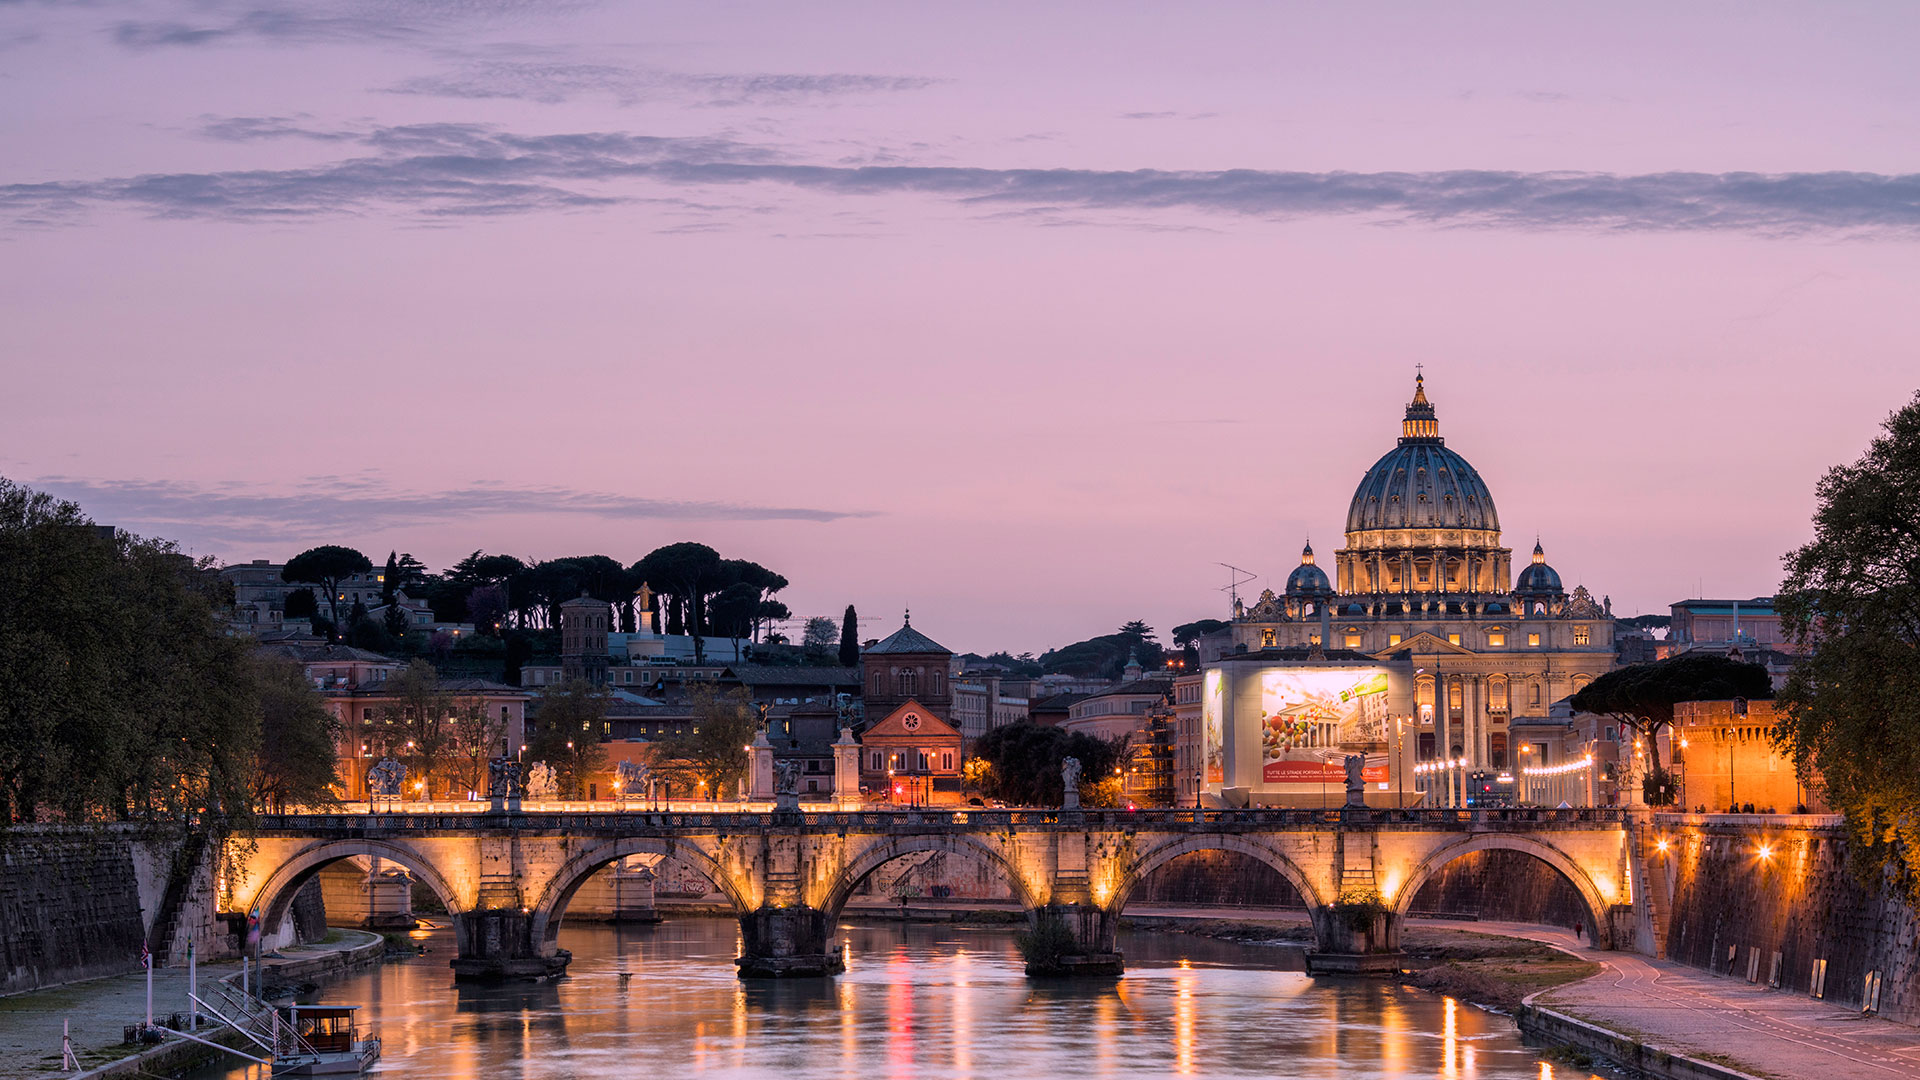 Aperitivo, Gladiators, and Gelato: The 4-Day Weekend in Rome